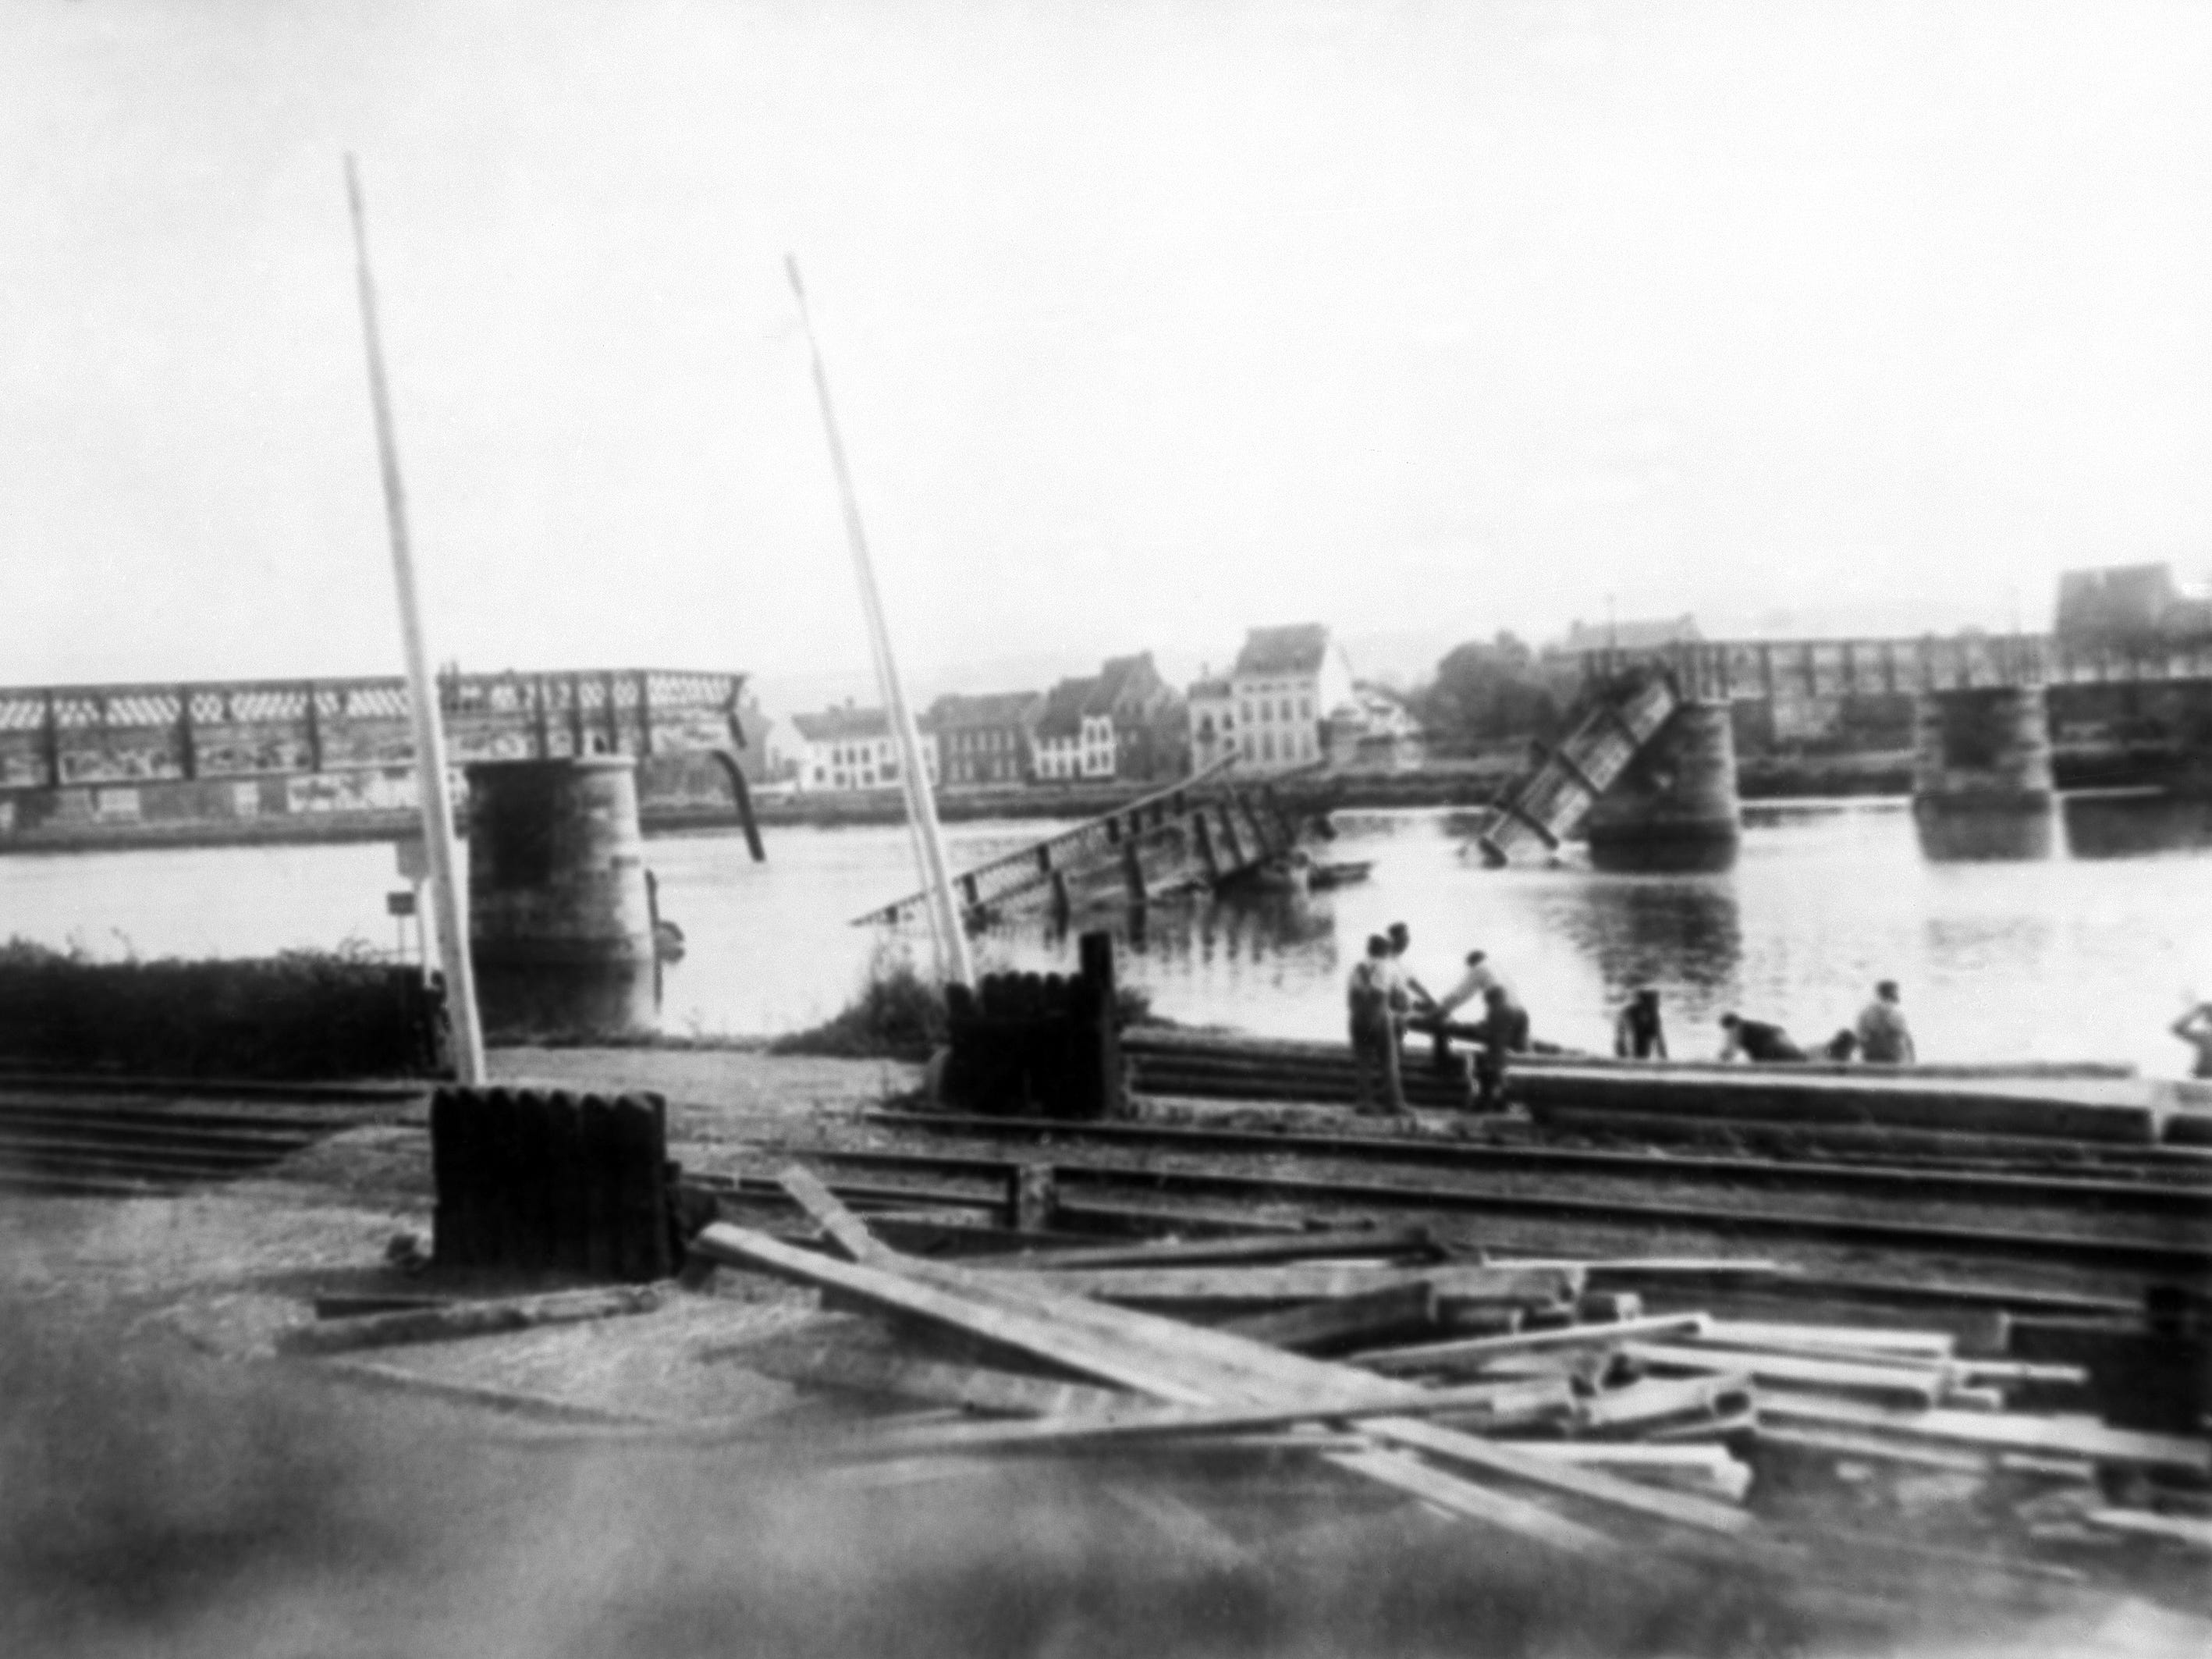 In this 1914 photo, a bridge across the Meuse River in Belgium, which was destroyed by retreating Belgian troops, is being rebuilt by invading German troops.